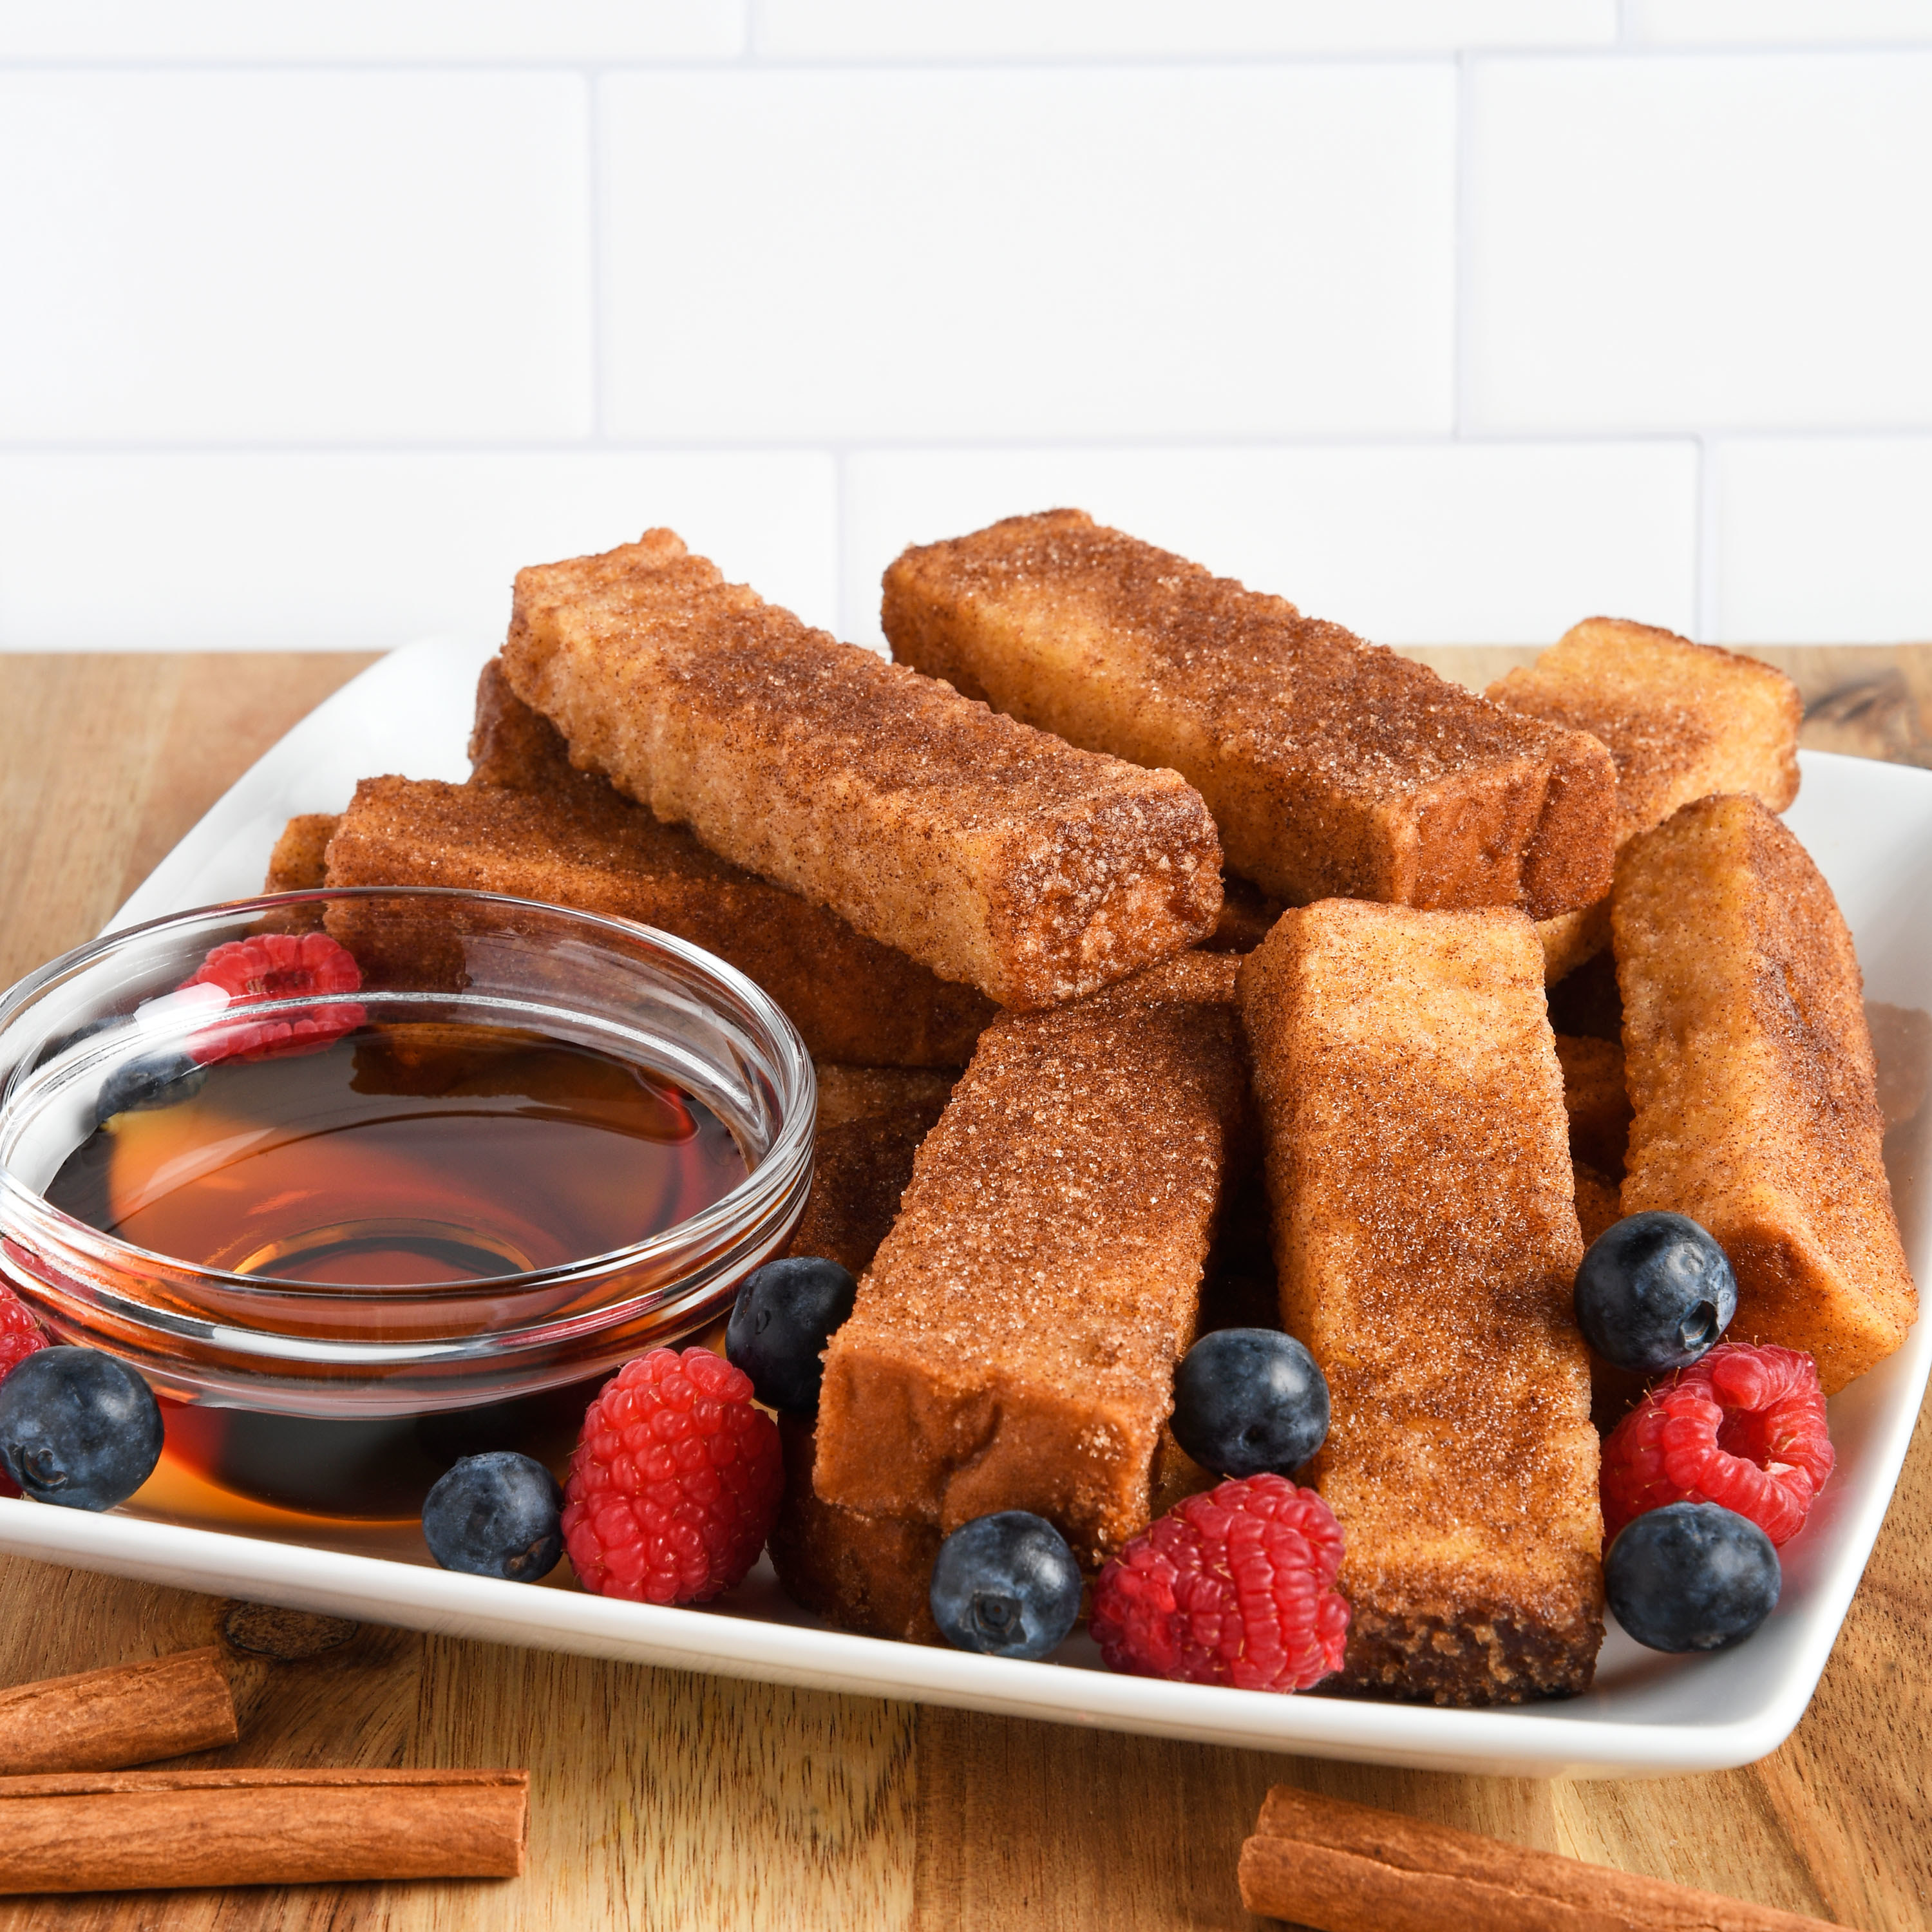 Plate of french toast sticks with raspberries and blueberries